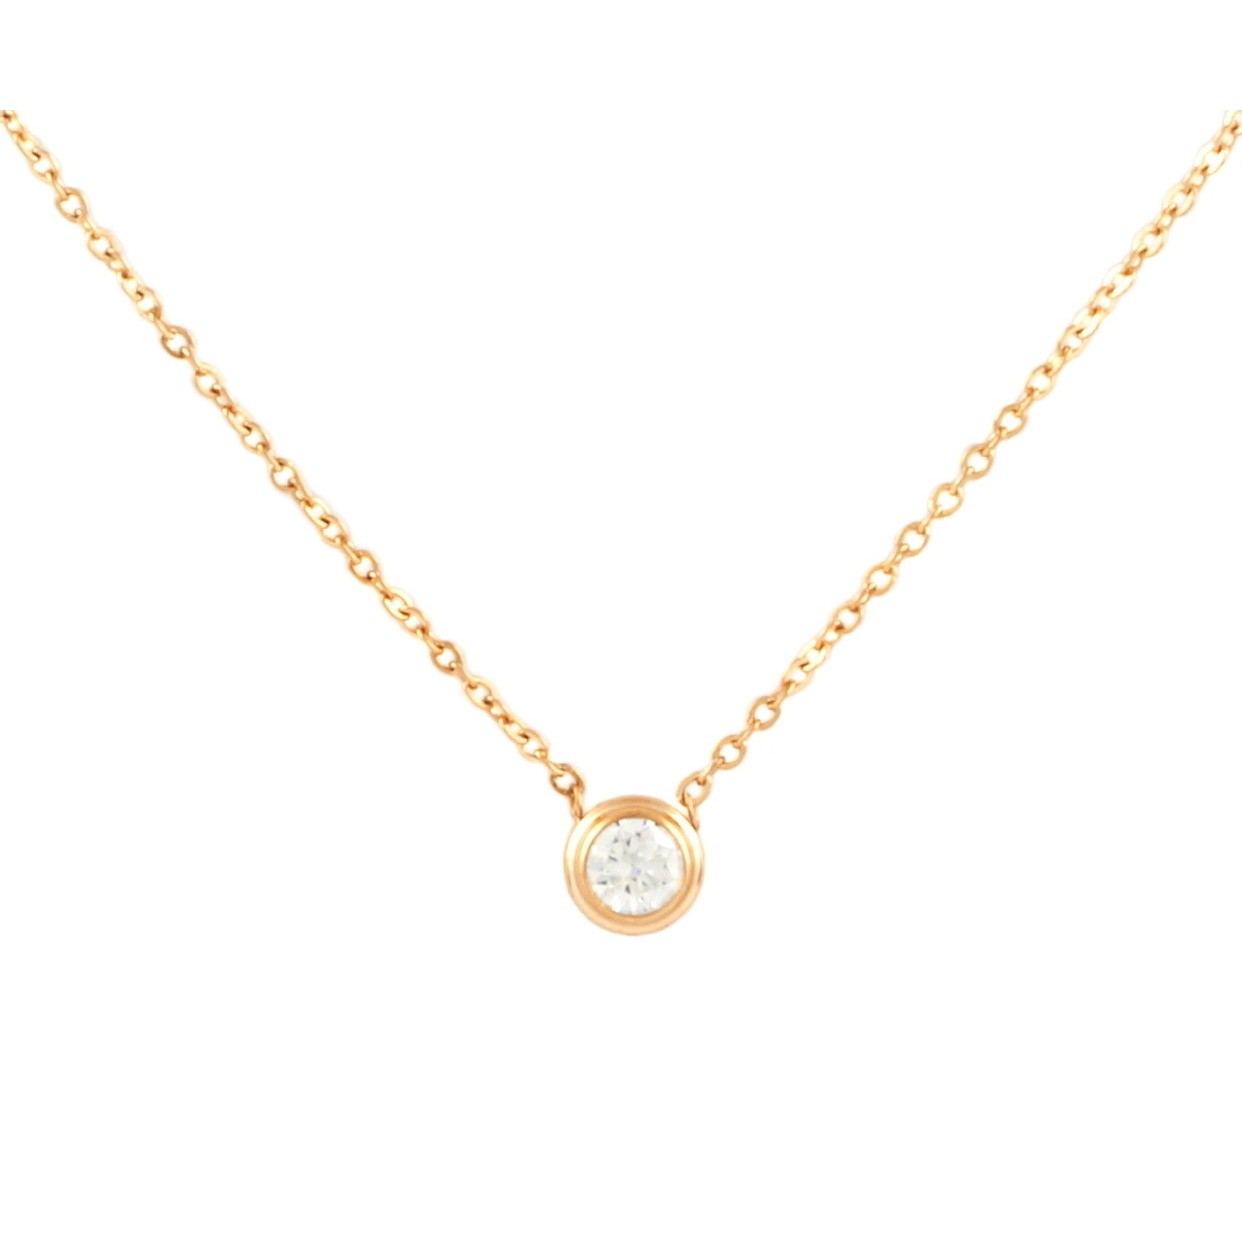 Dainty Crystal Necklace | Gold plated on Titanium